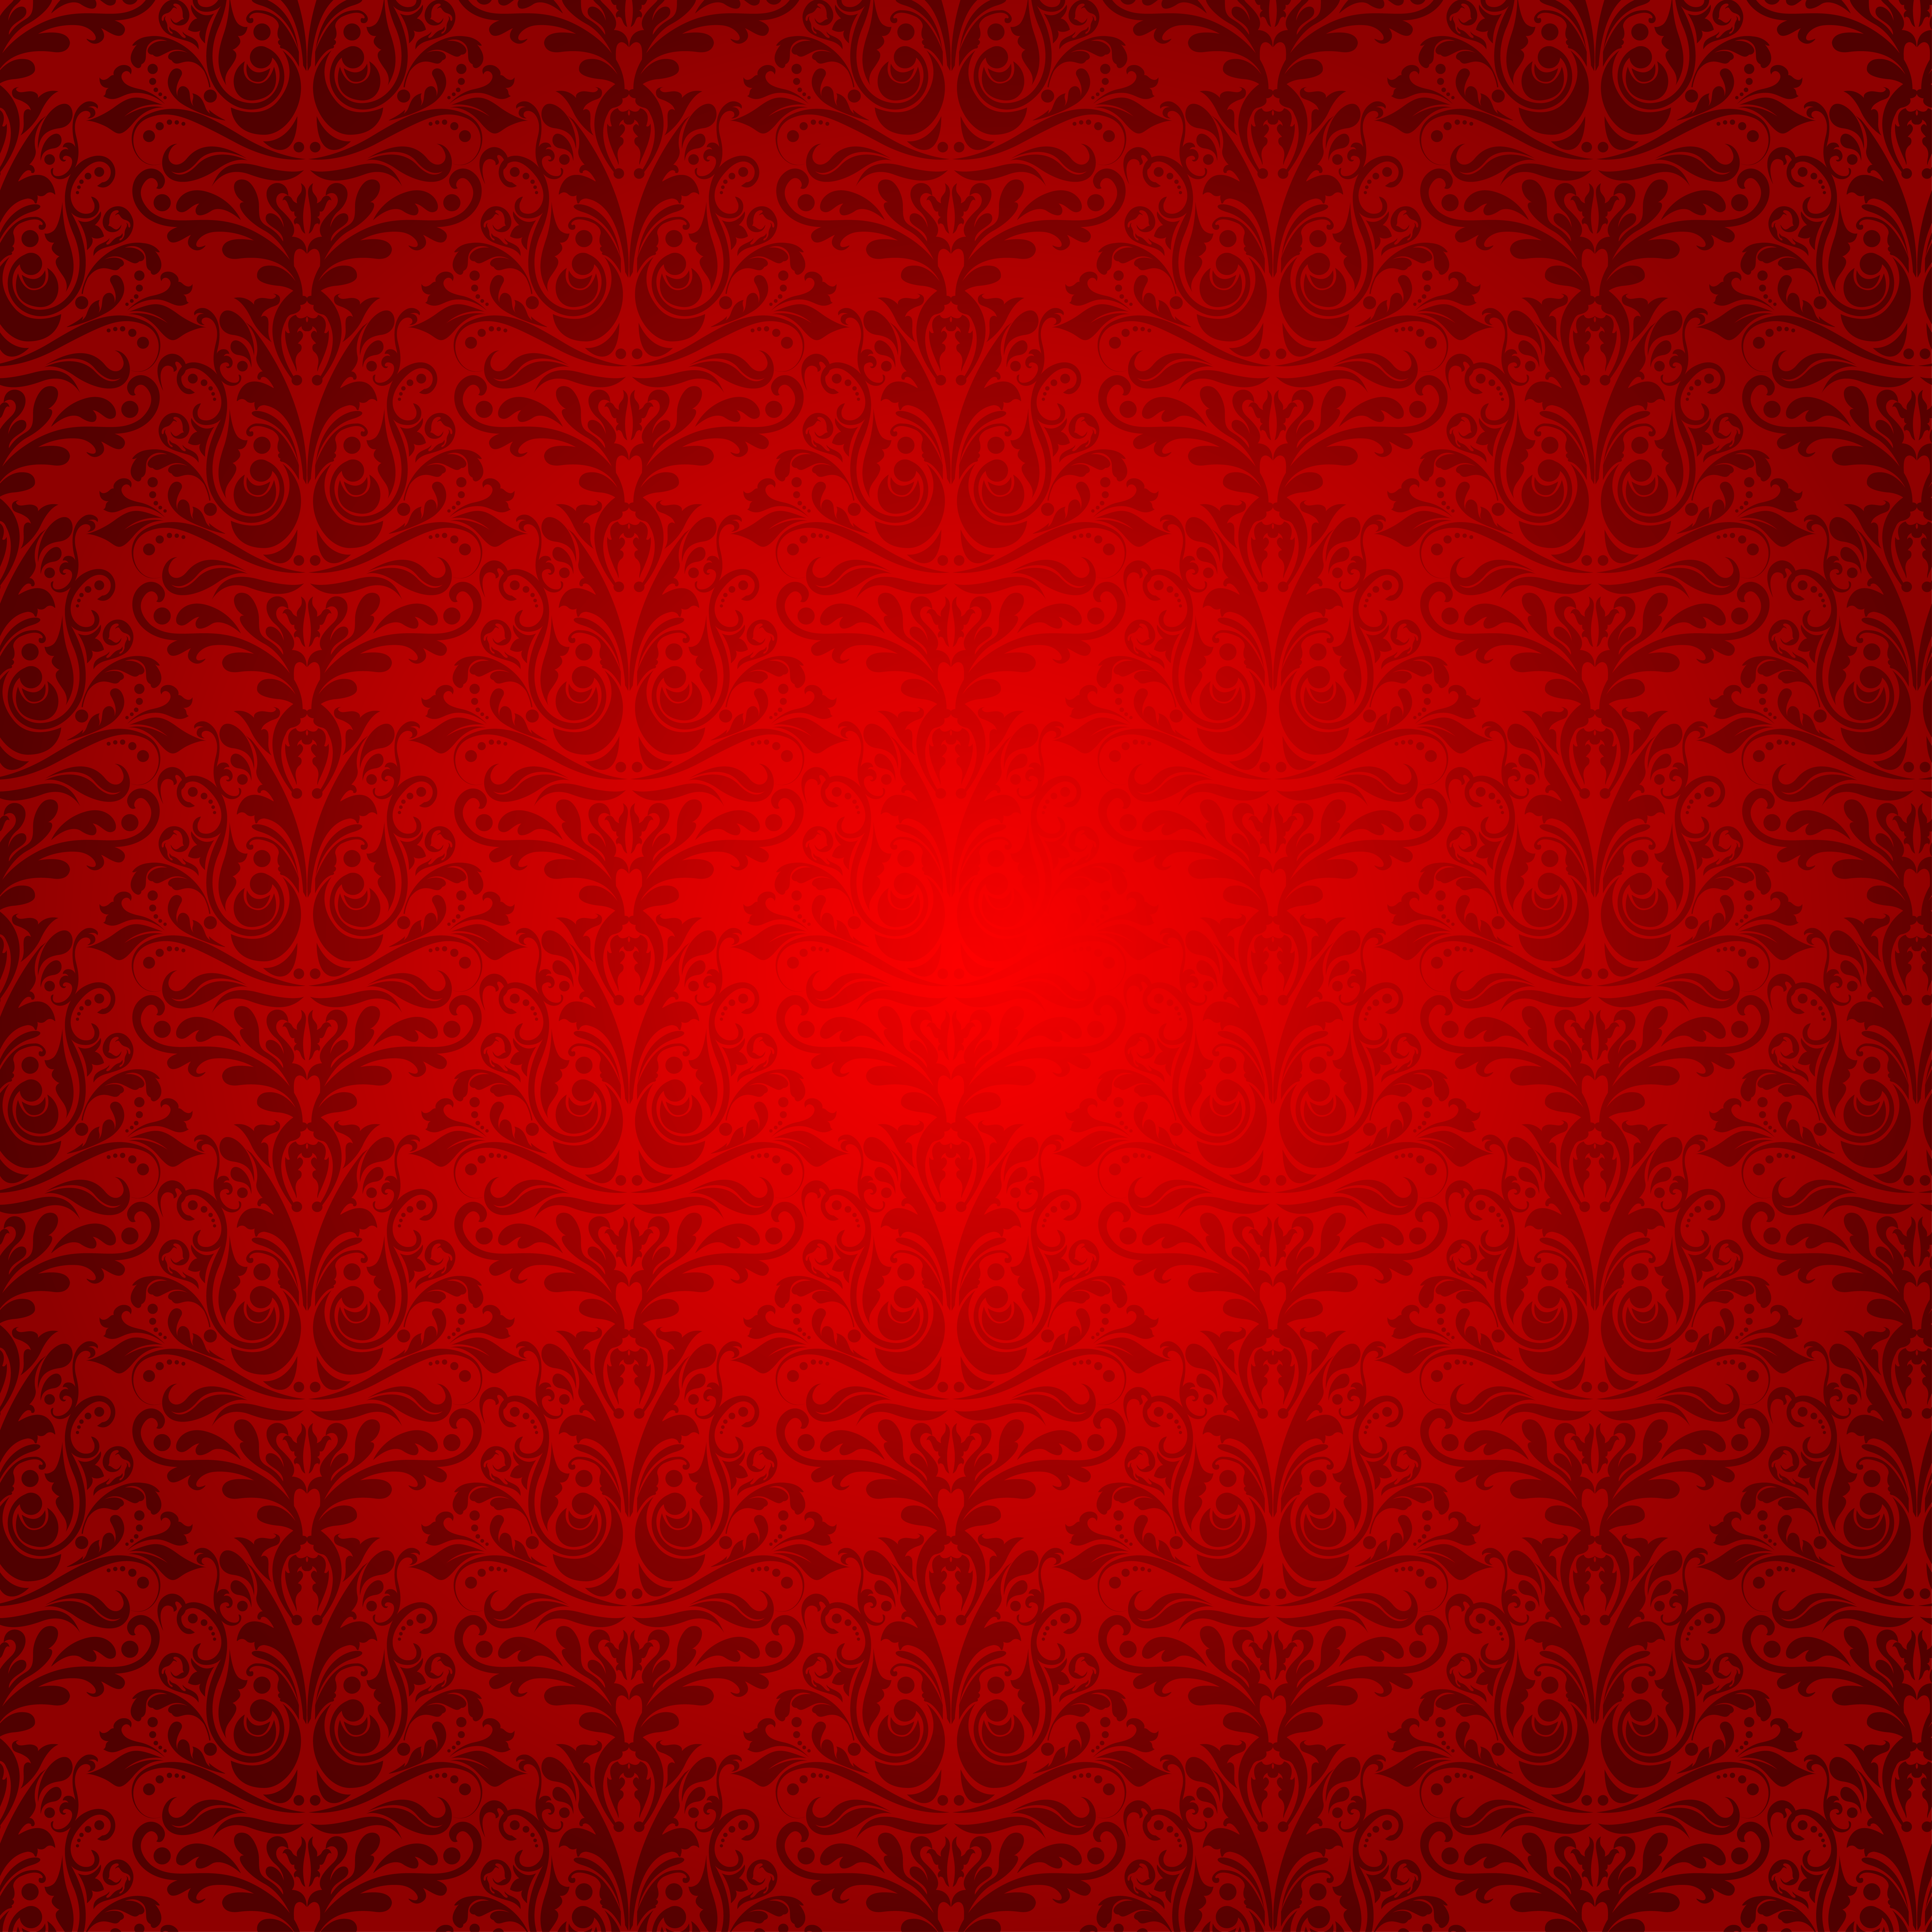 Red Background with Ornaments.